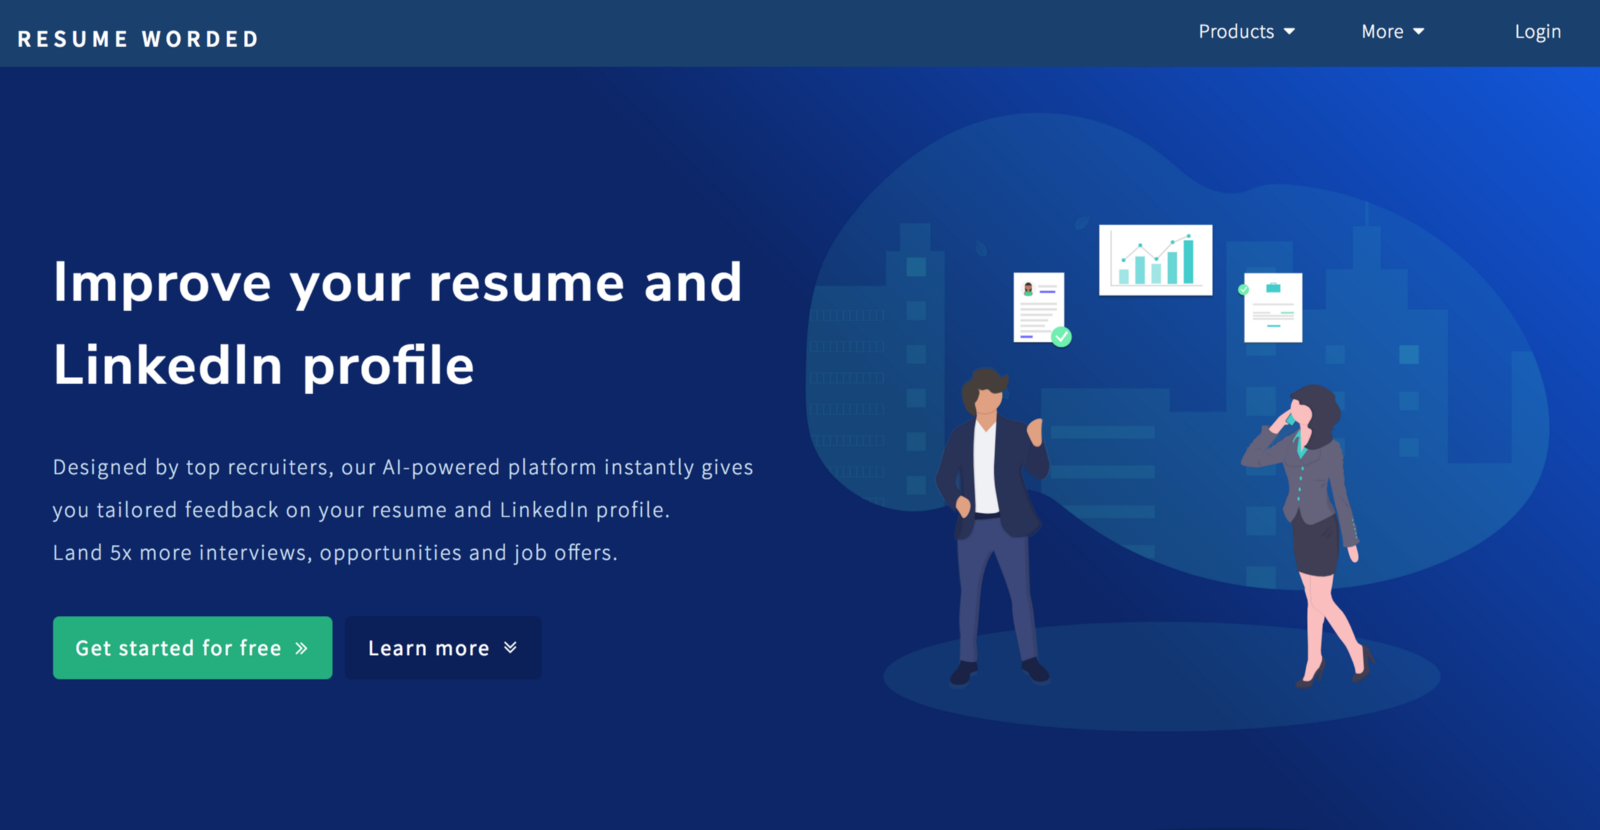 Founder Interviews: Rohan Mahtani of Resume Worded - By